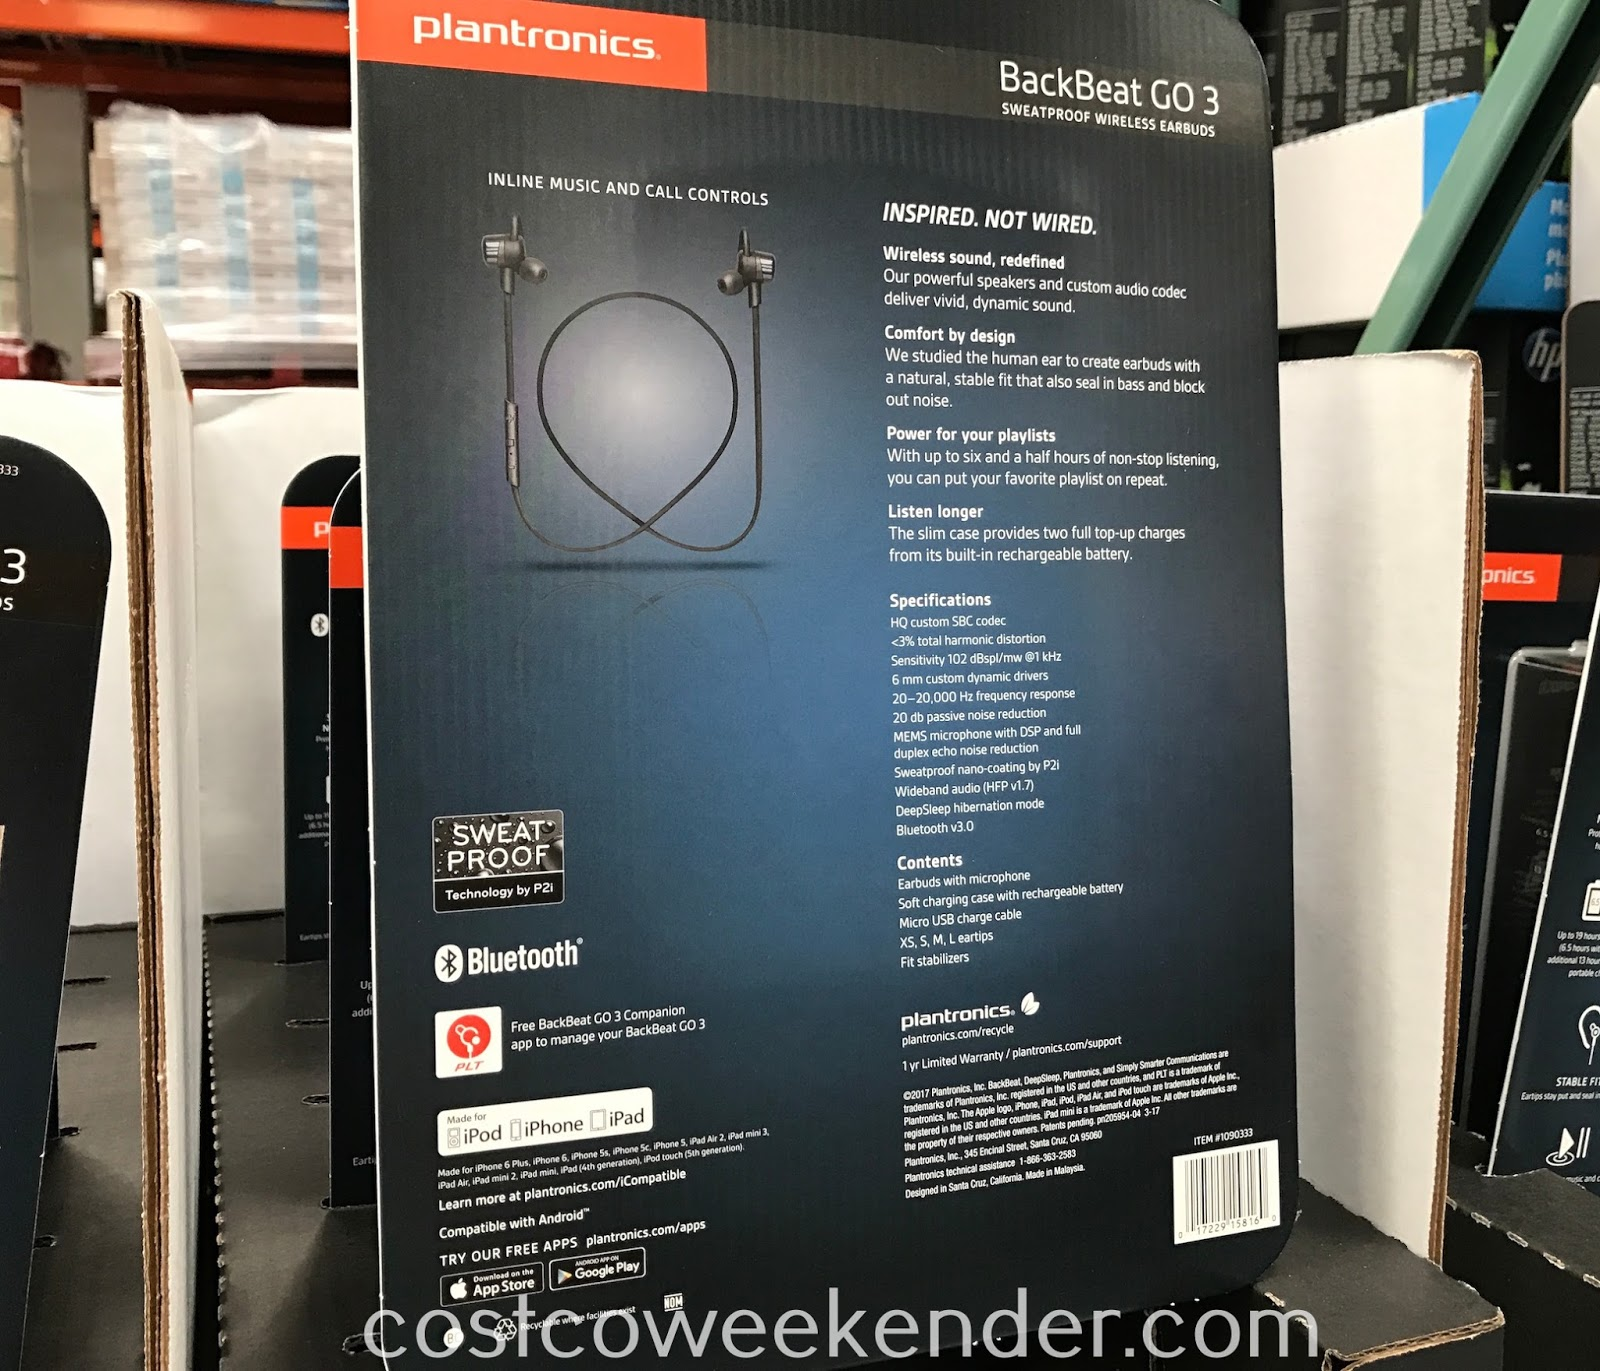 Costco 1090333 - Your mobile device is not complete without the Plantronics BackBeat GO 3 Sweatproof Wireless Earbuds